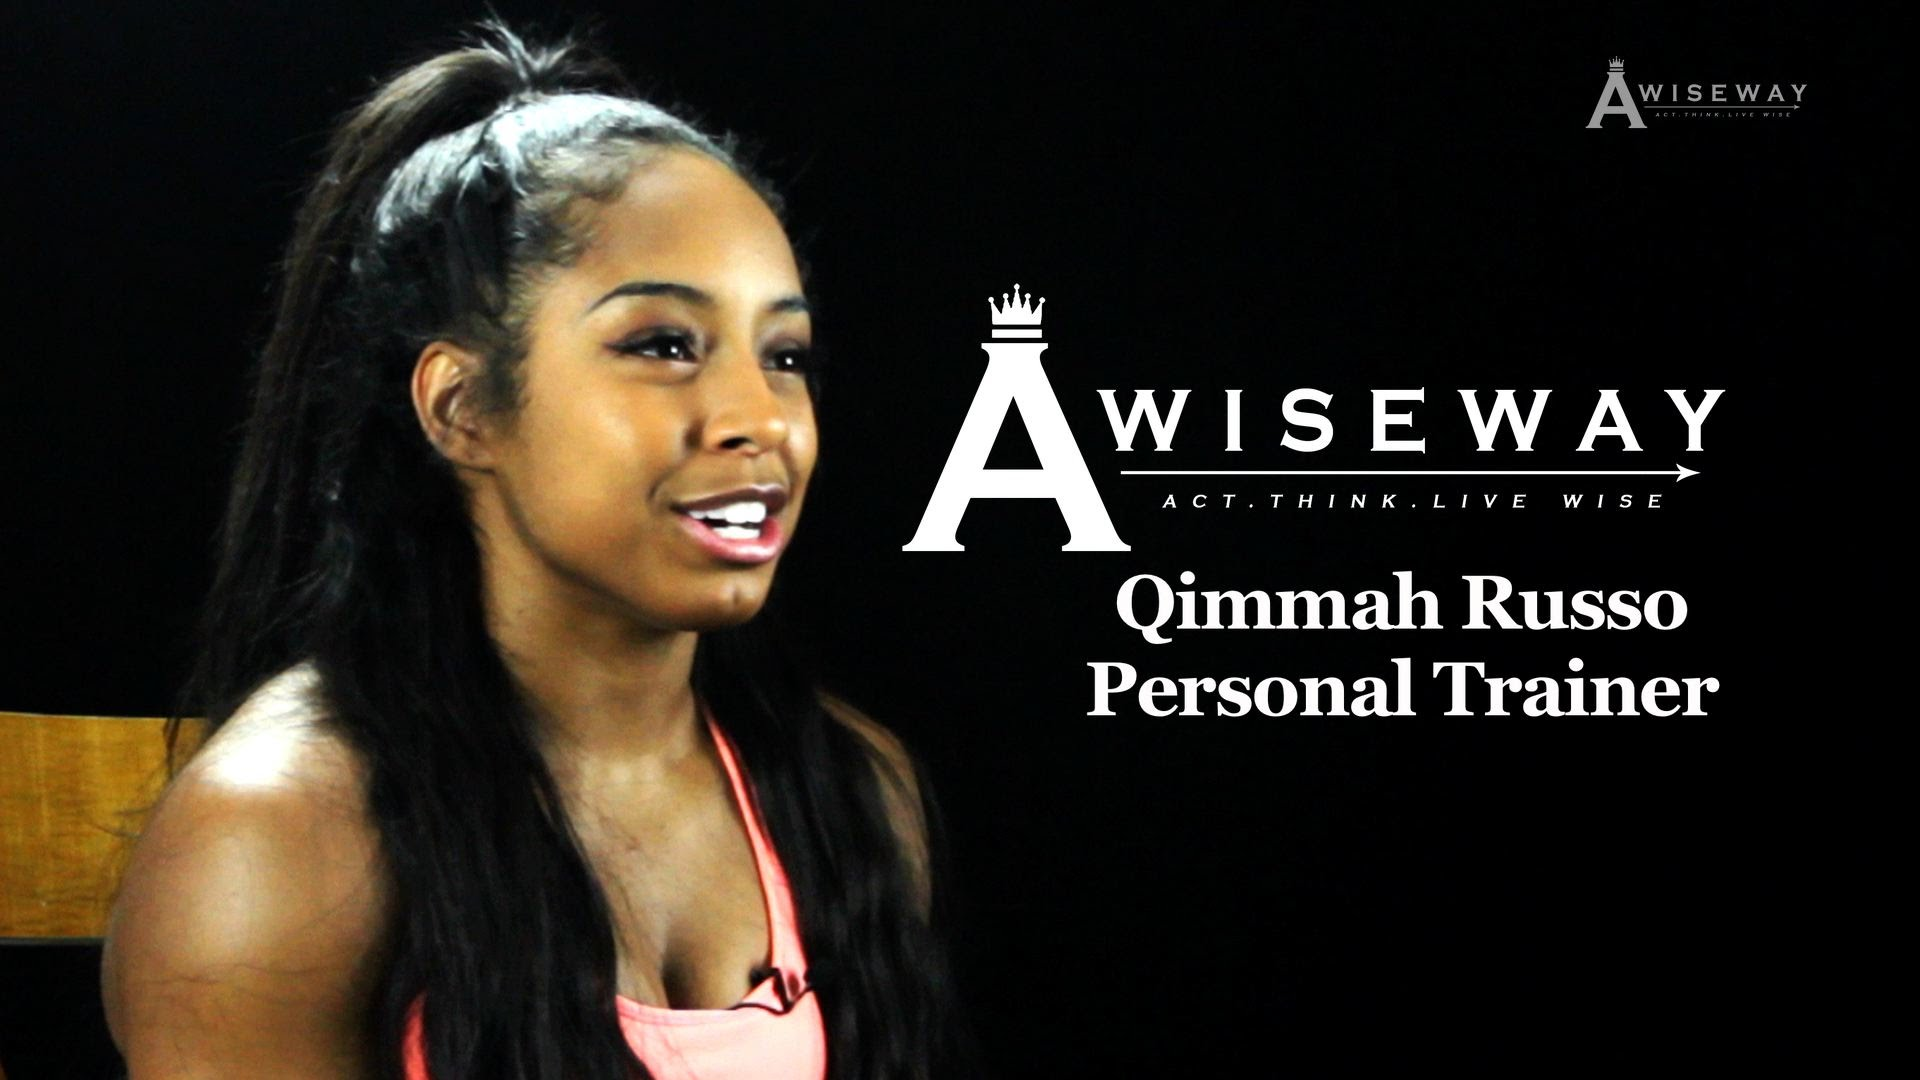 The Quote That Helped Qimmah Russo Become a Better Person